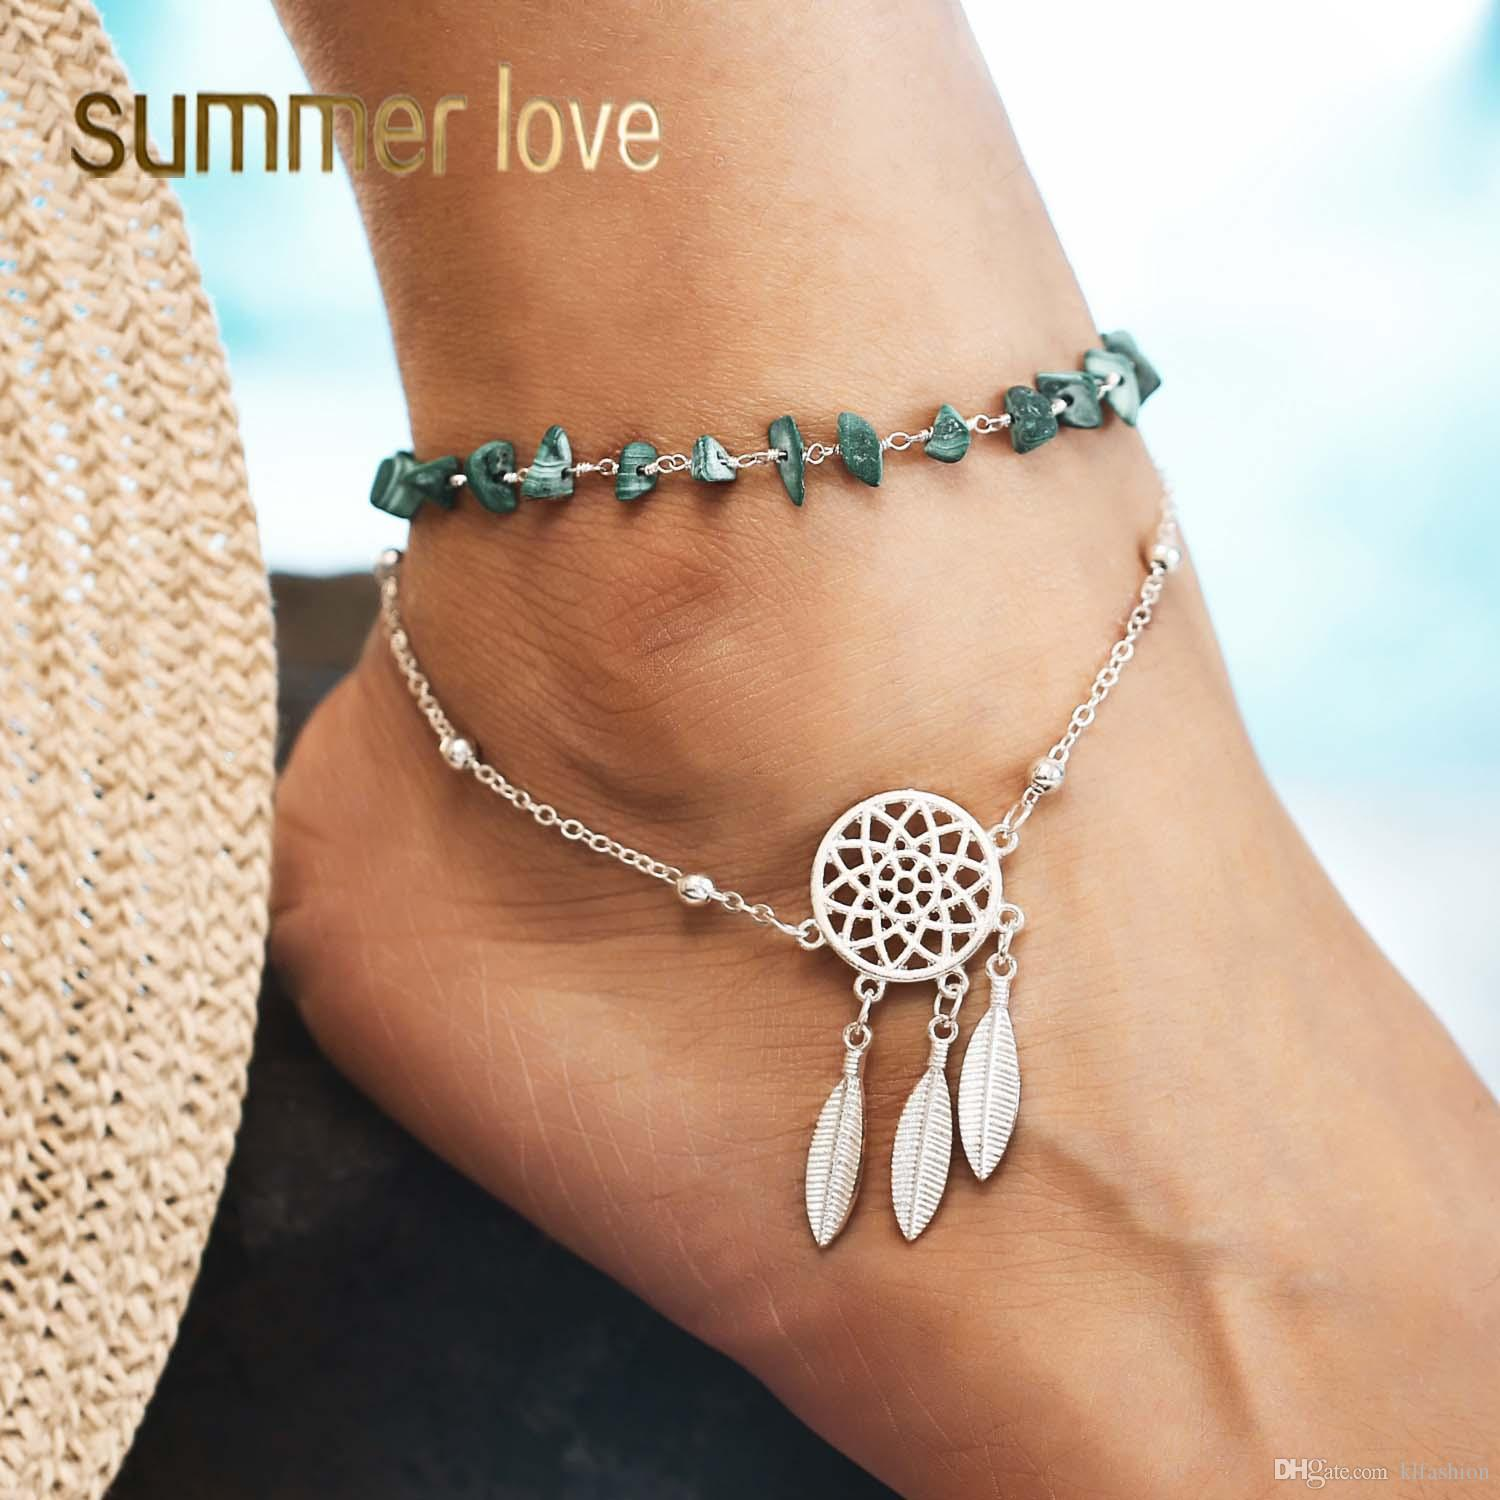 51b0c3ae6aa53 New Style Chic Women Boho Ethnic Irregularity Stone Anklets Dreamcatcher  Foot Chain Beach Jewelry Fashion Leaf Feather Charm Accessories